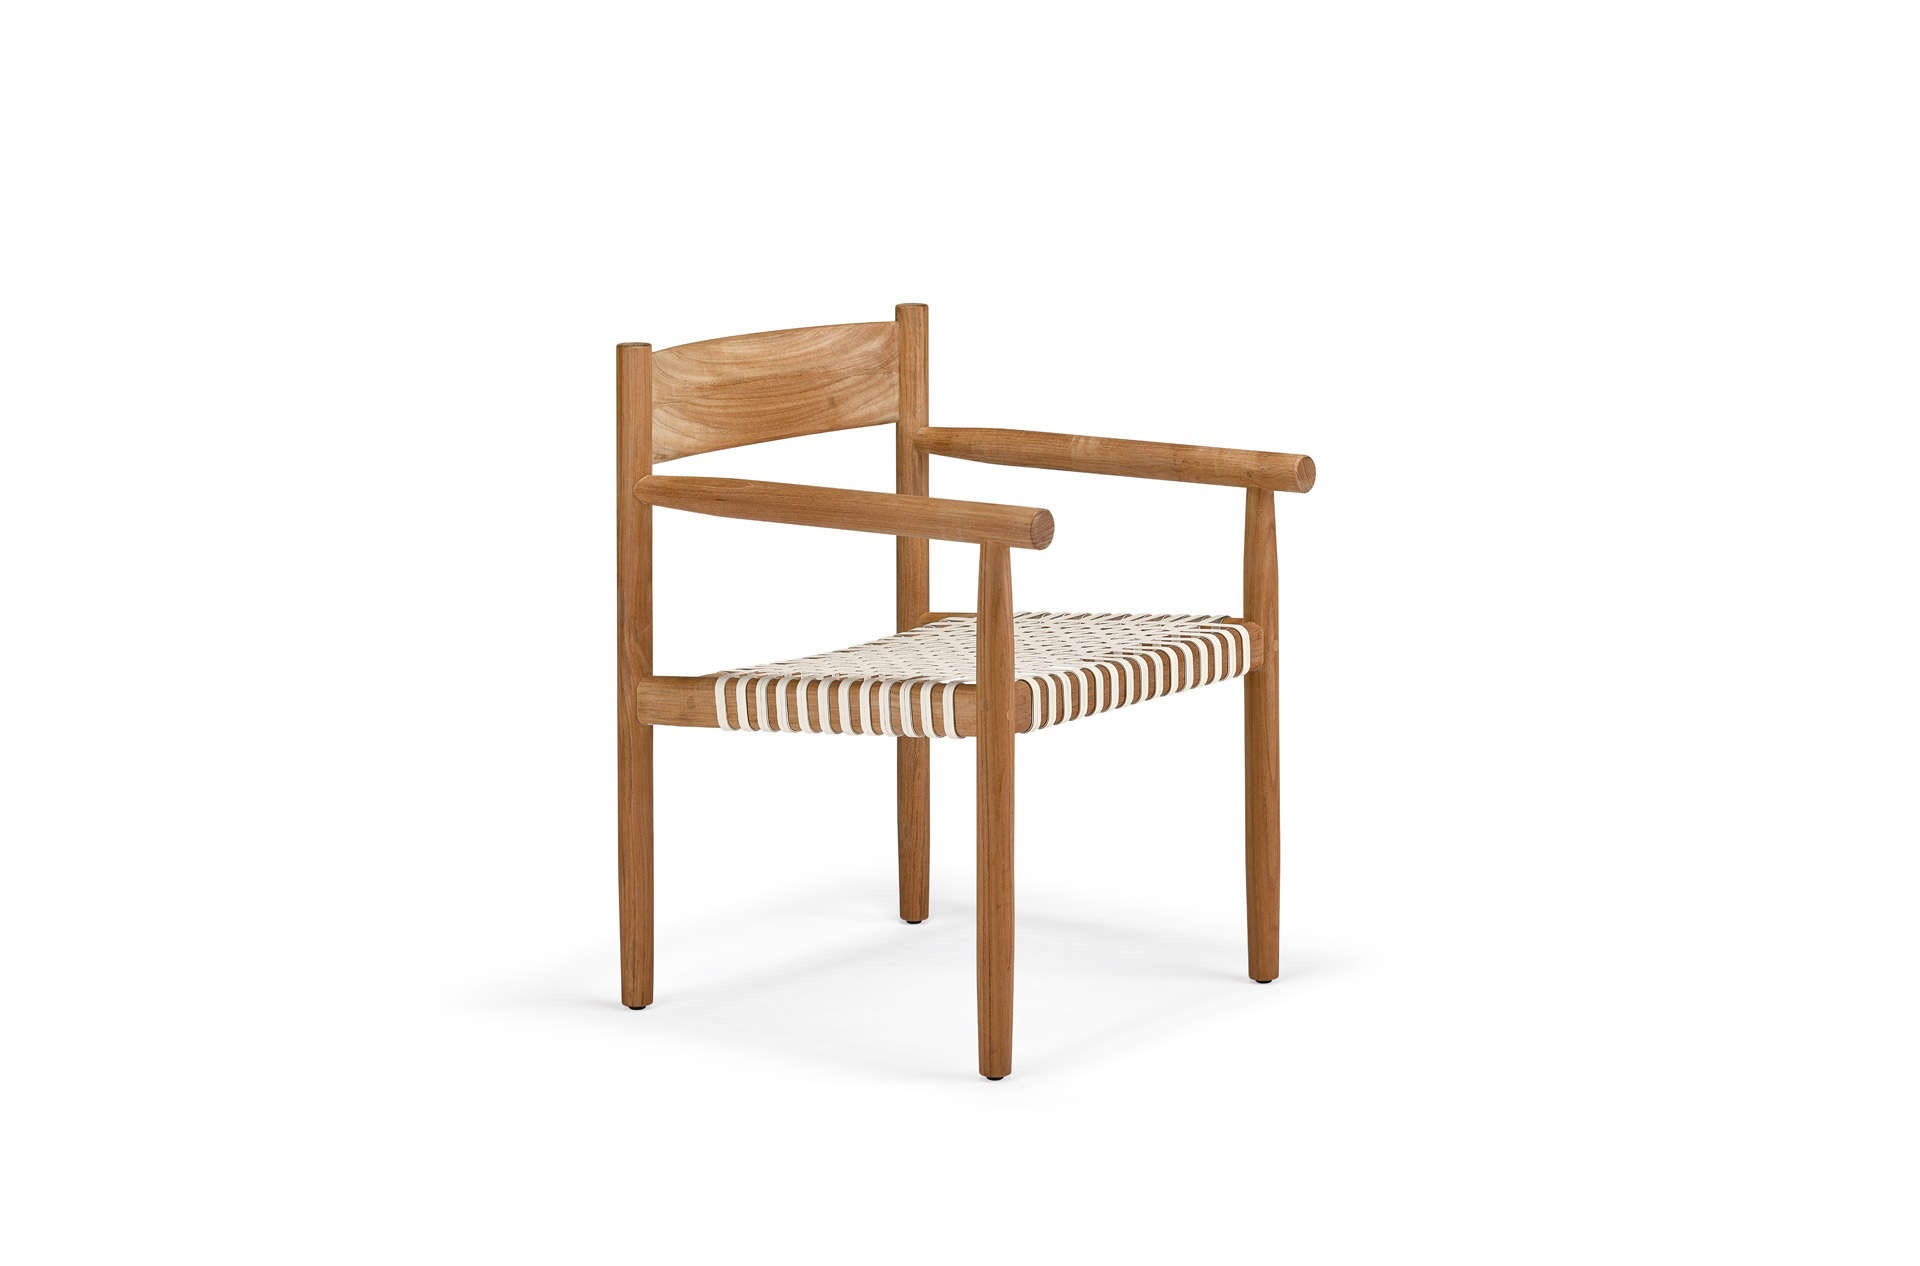 Sleek Teak A New Outdoor Furniture Collection by Barber & Osgerby